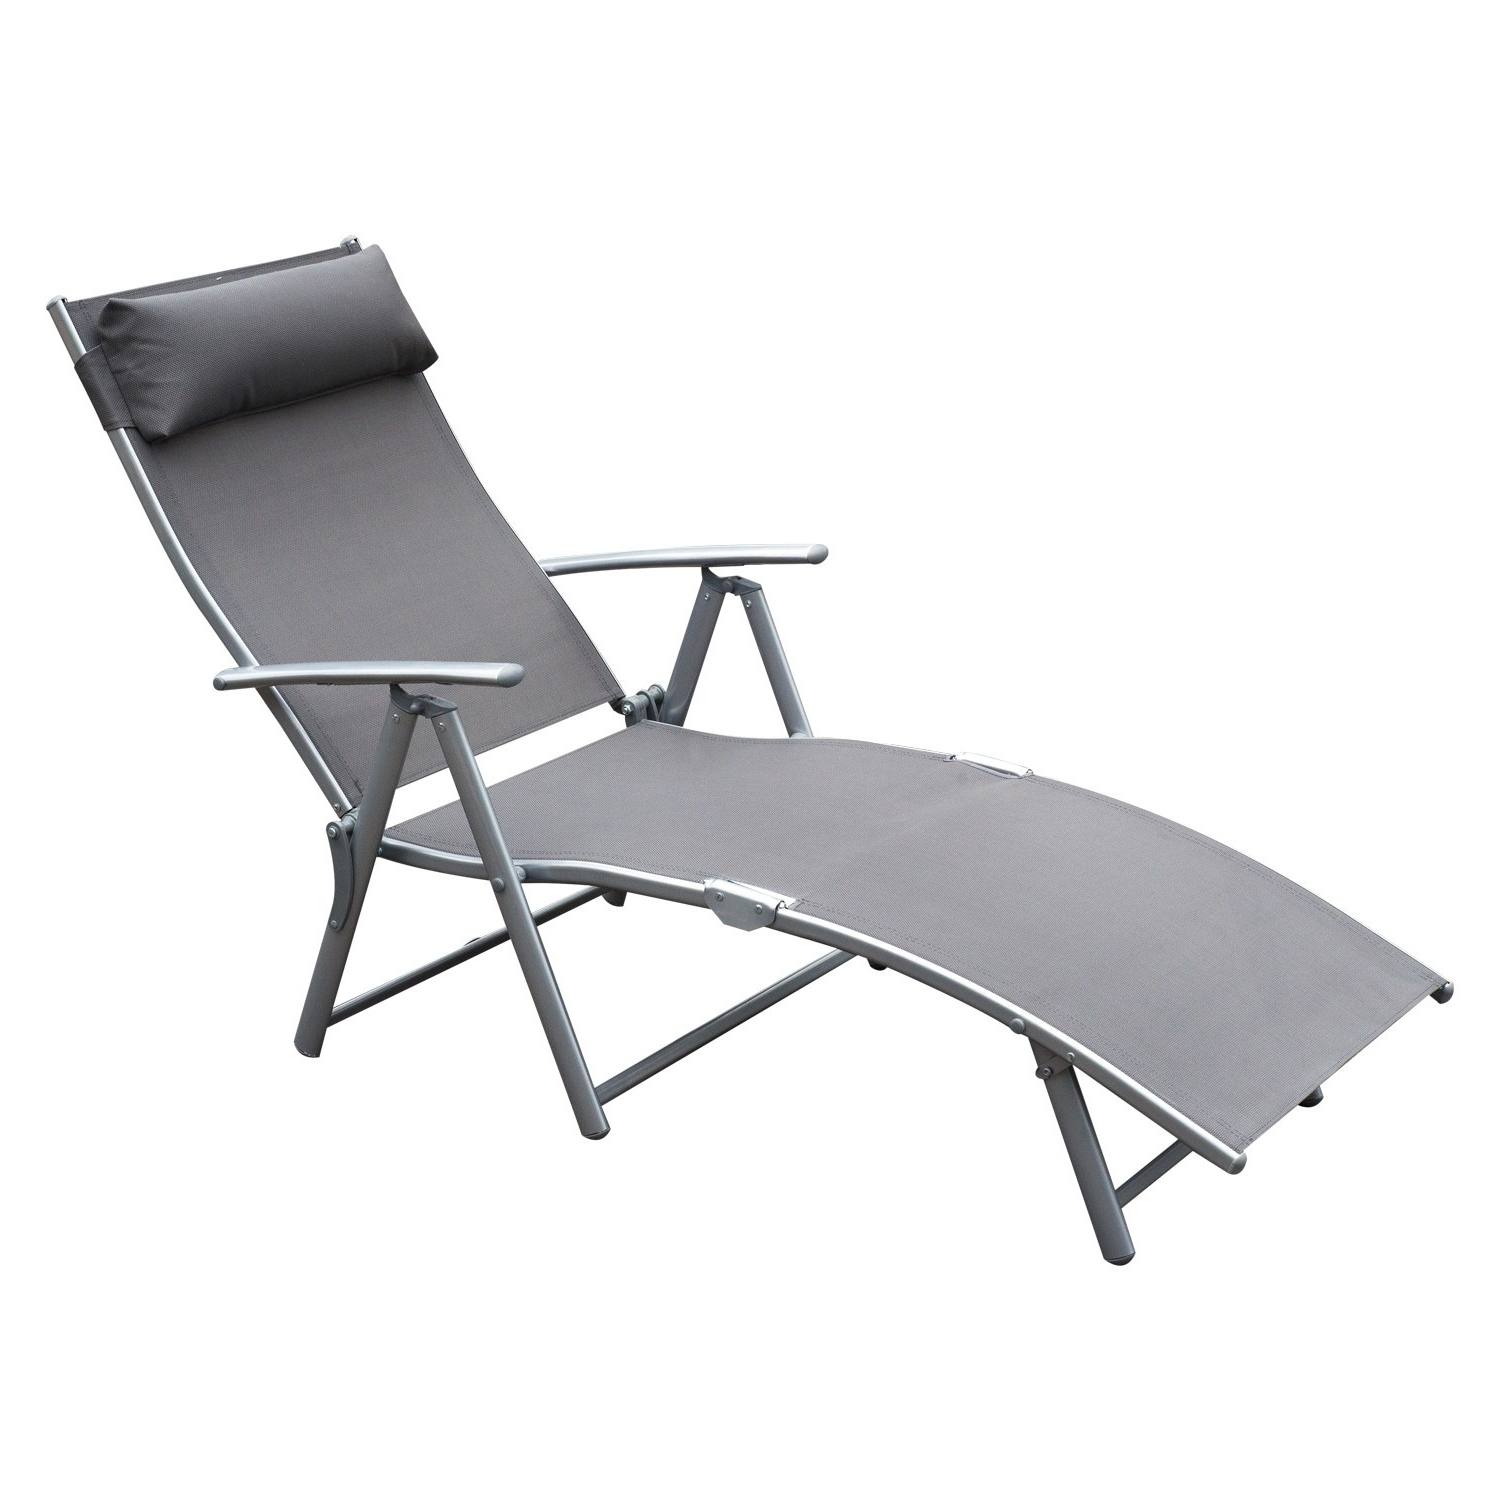 Outdoor : Target Lounge Chairs Folding Lounge Chair Target Outdoor Throughout Most Popular Chaise Lounge Chairs At Target (View 15 of 15)